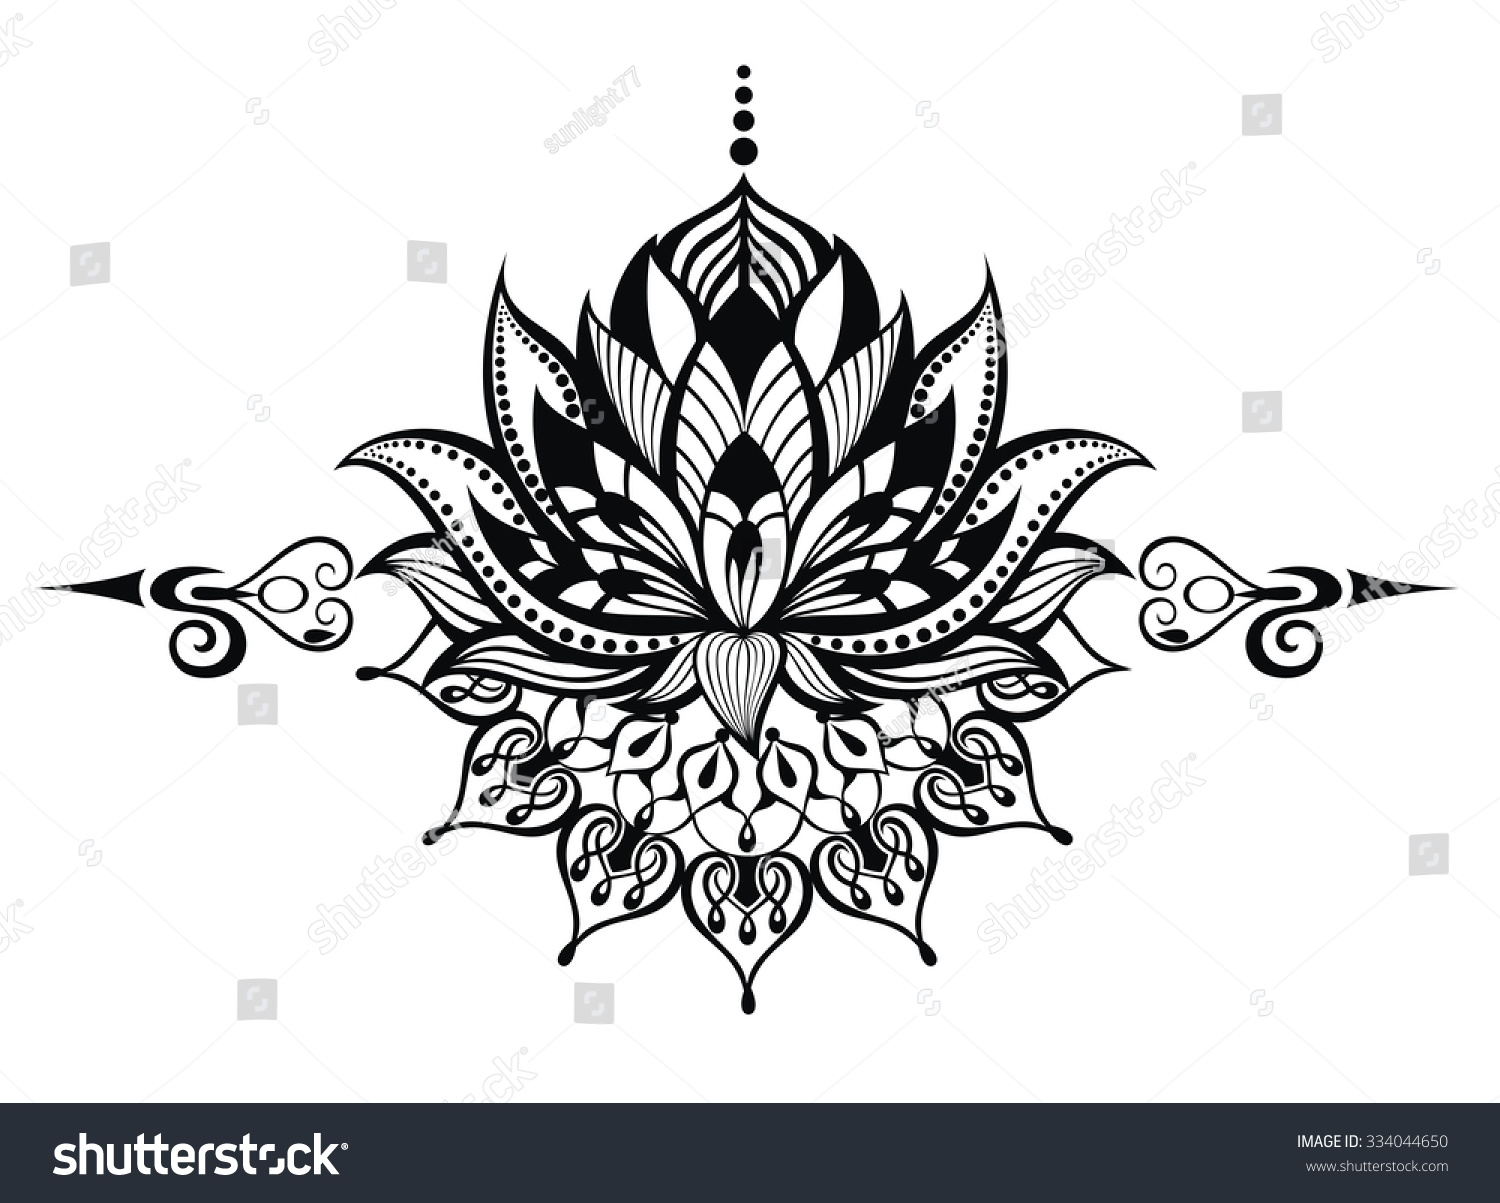 Lotus flower tattoo - Lotus Flower Tattoo